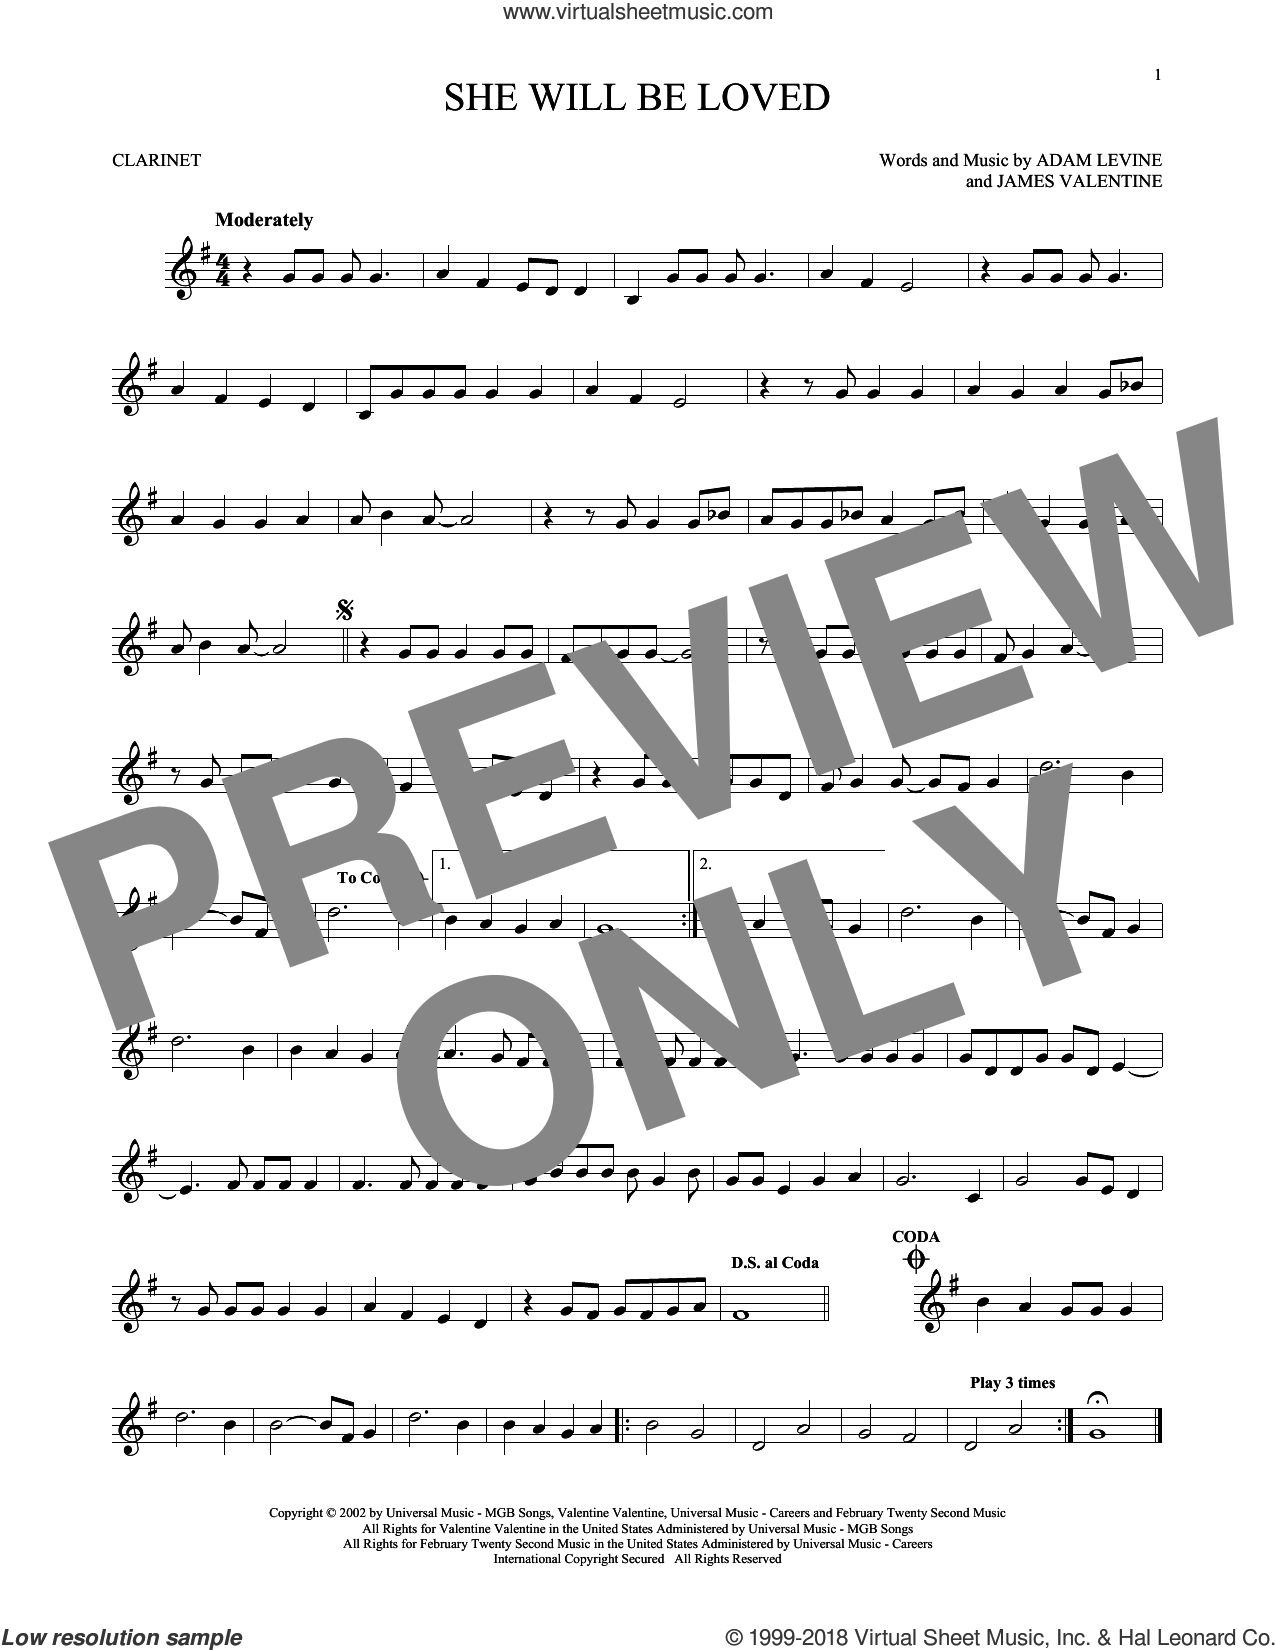 She Will Be Loved sheet music for clarinet solo by Maroon 5, Adam Levine and James Valentine, intermediate skill level